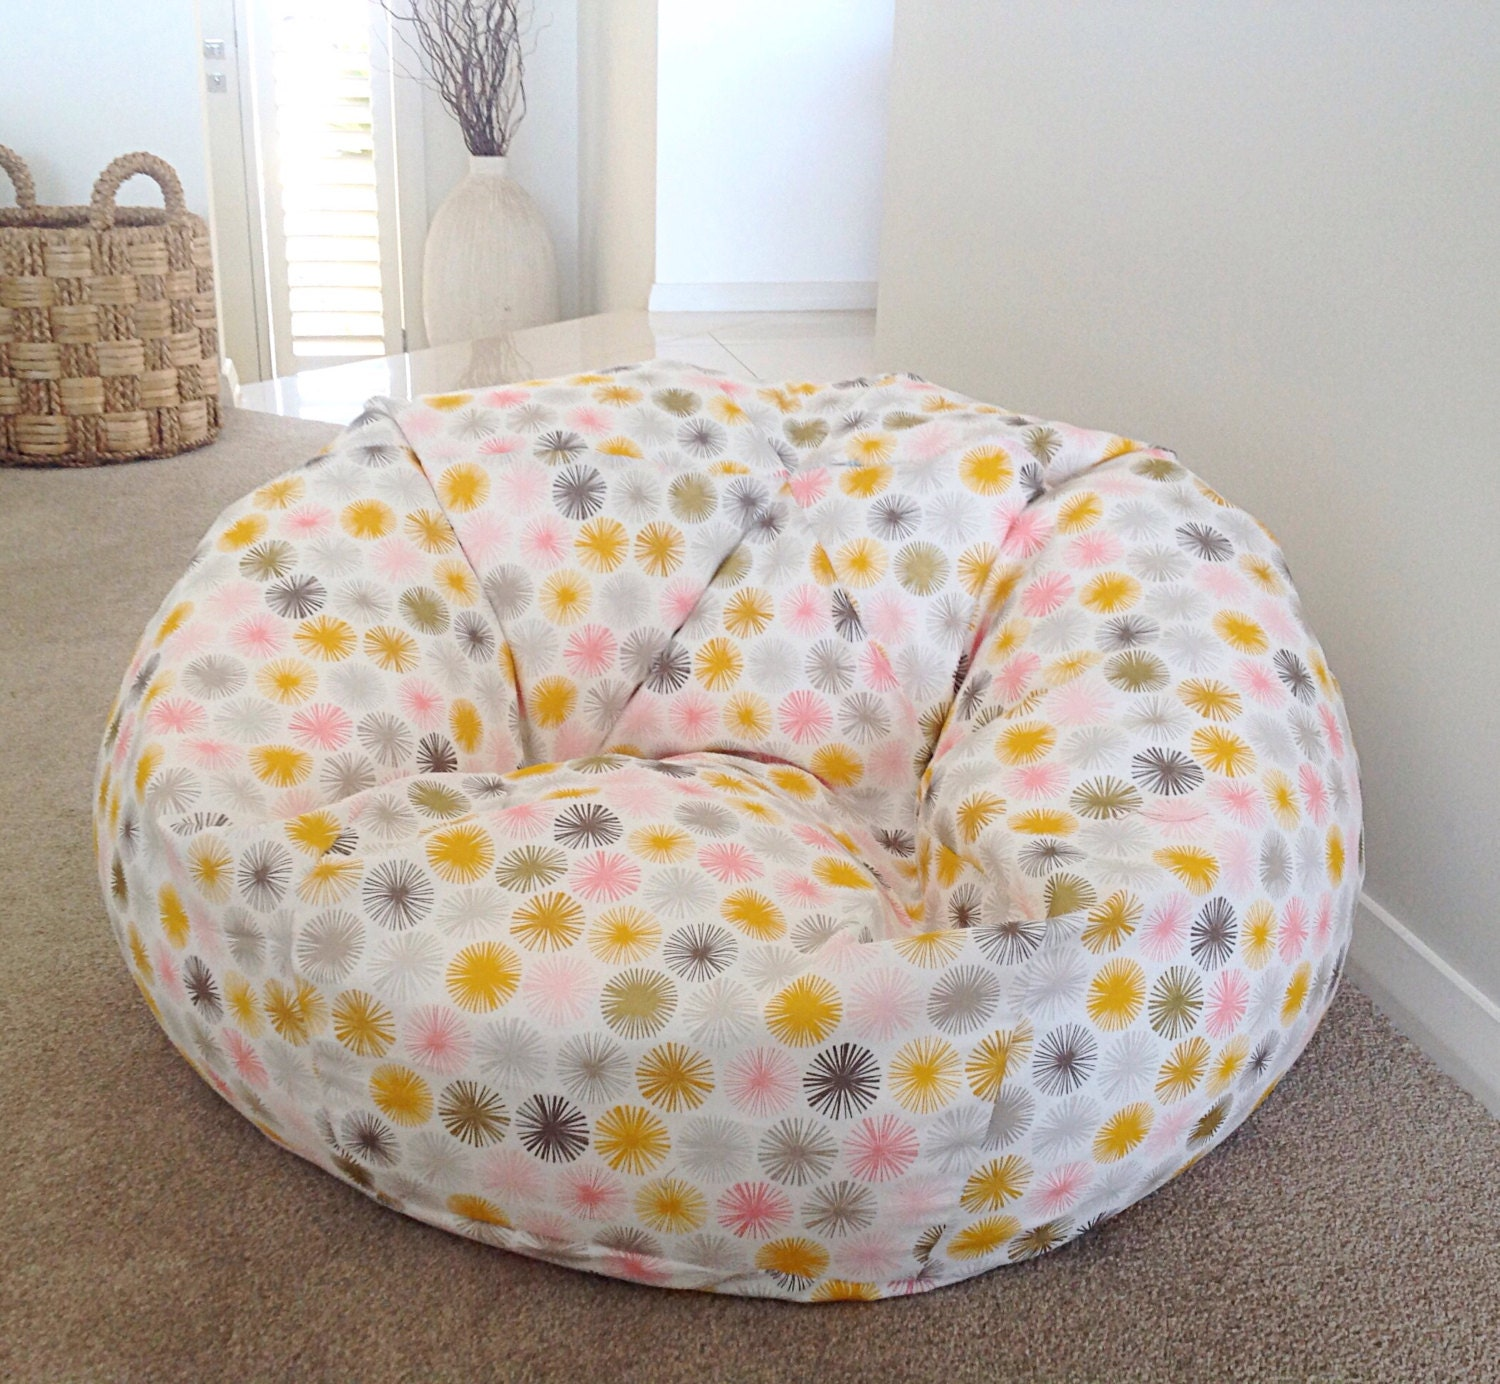 Bean bag chairs for teenage girls - Bean Bag Kids Snowflakes Organic Cotton Bean Bag Cover And Liner Bag Metalic Gold Girls Bean